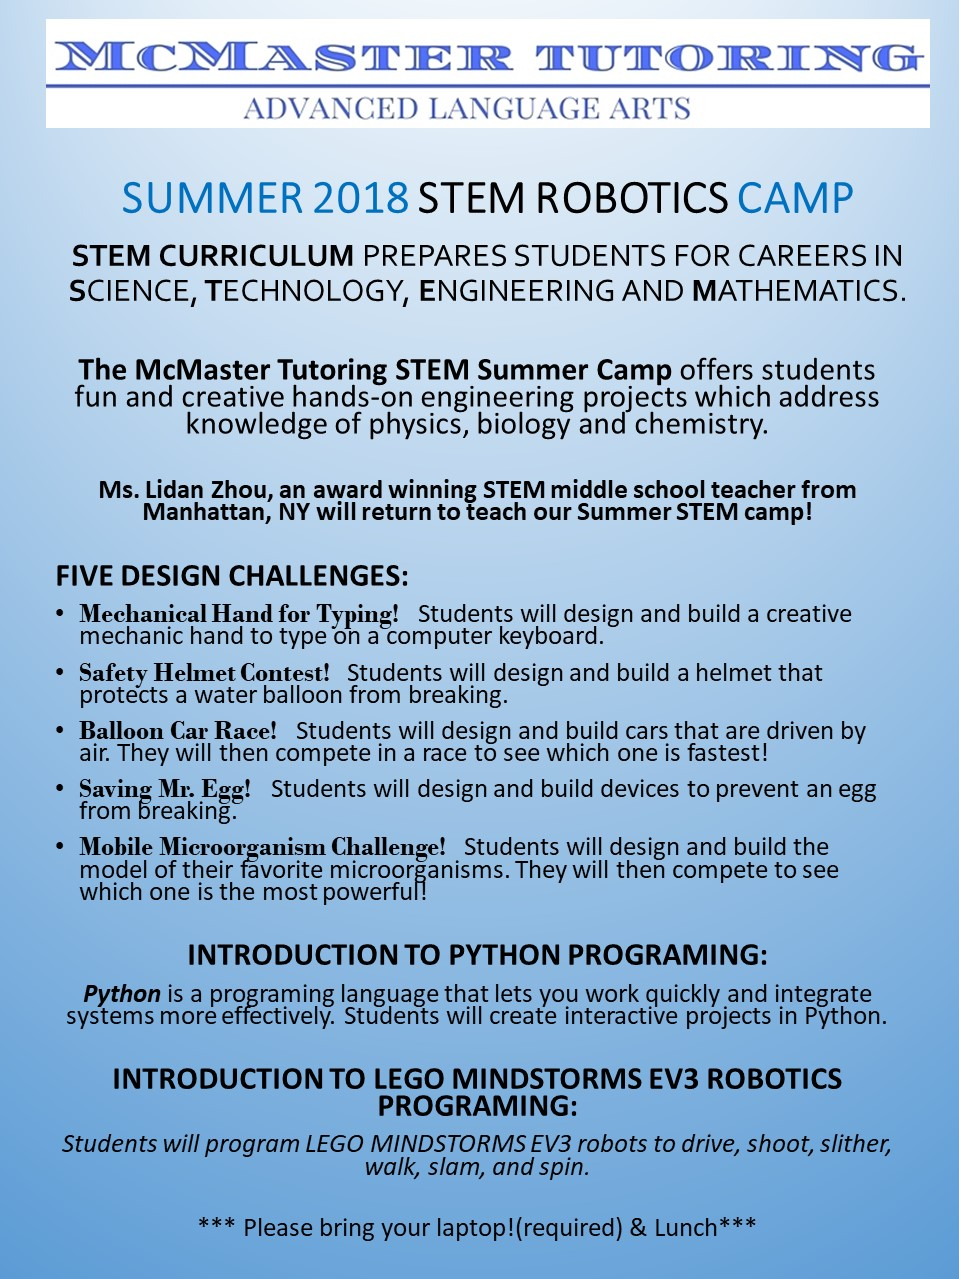 SUMMER 2018 STEM CAMP flyer upper grade2.jpg